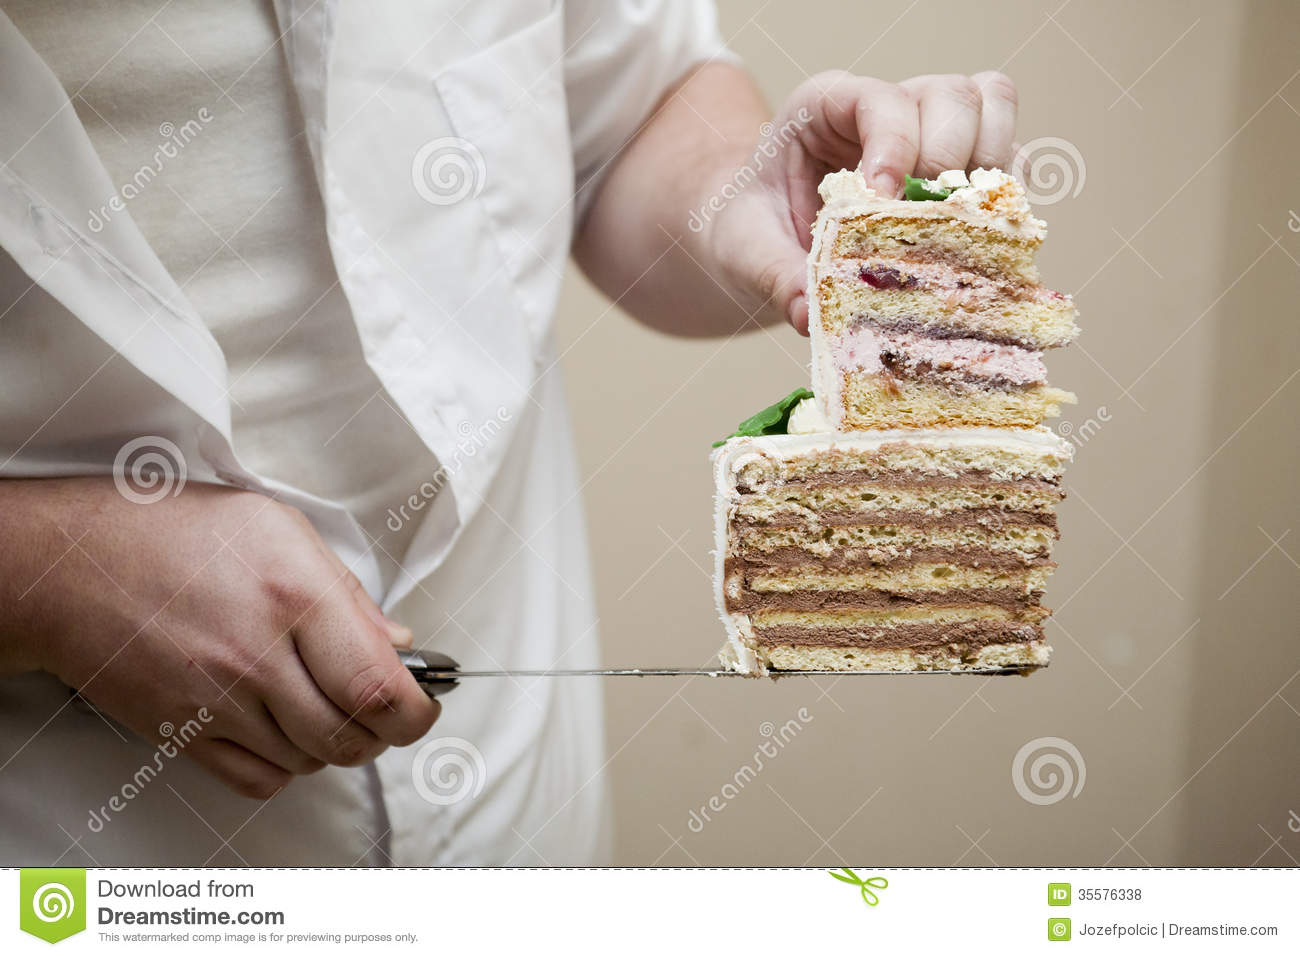 Chef holding cake cuttings stock photo. Image of delicious - 35576338